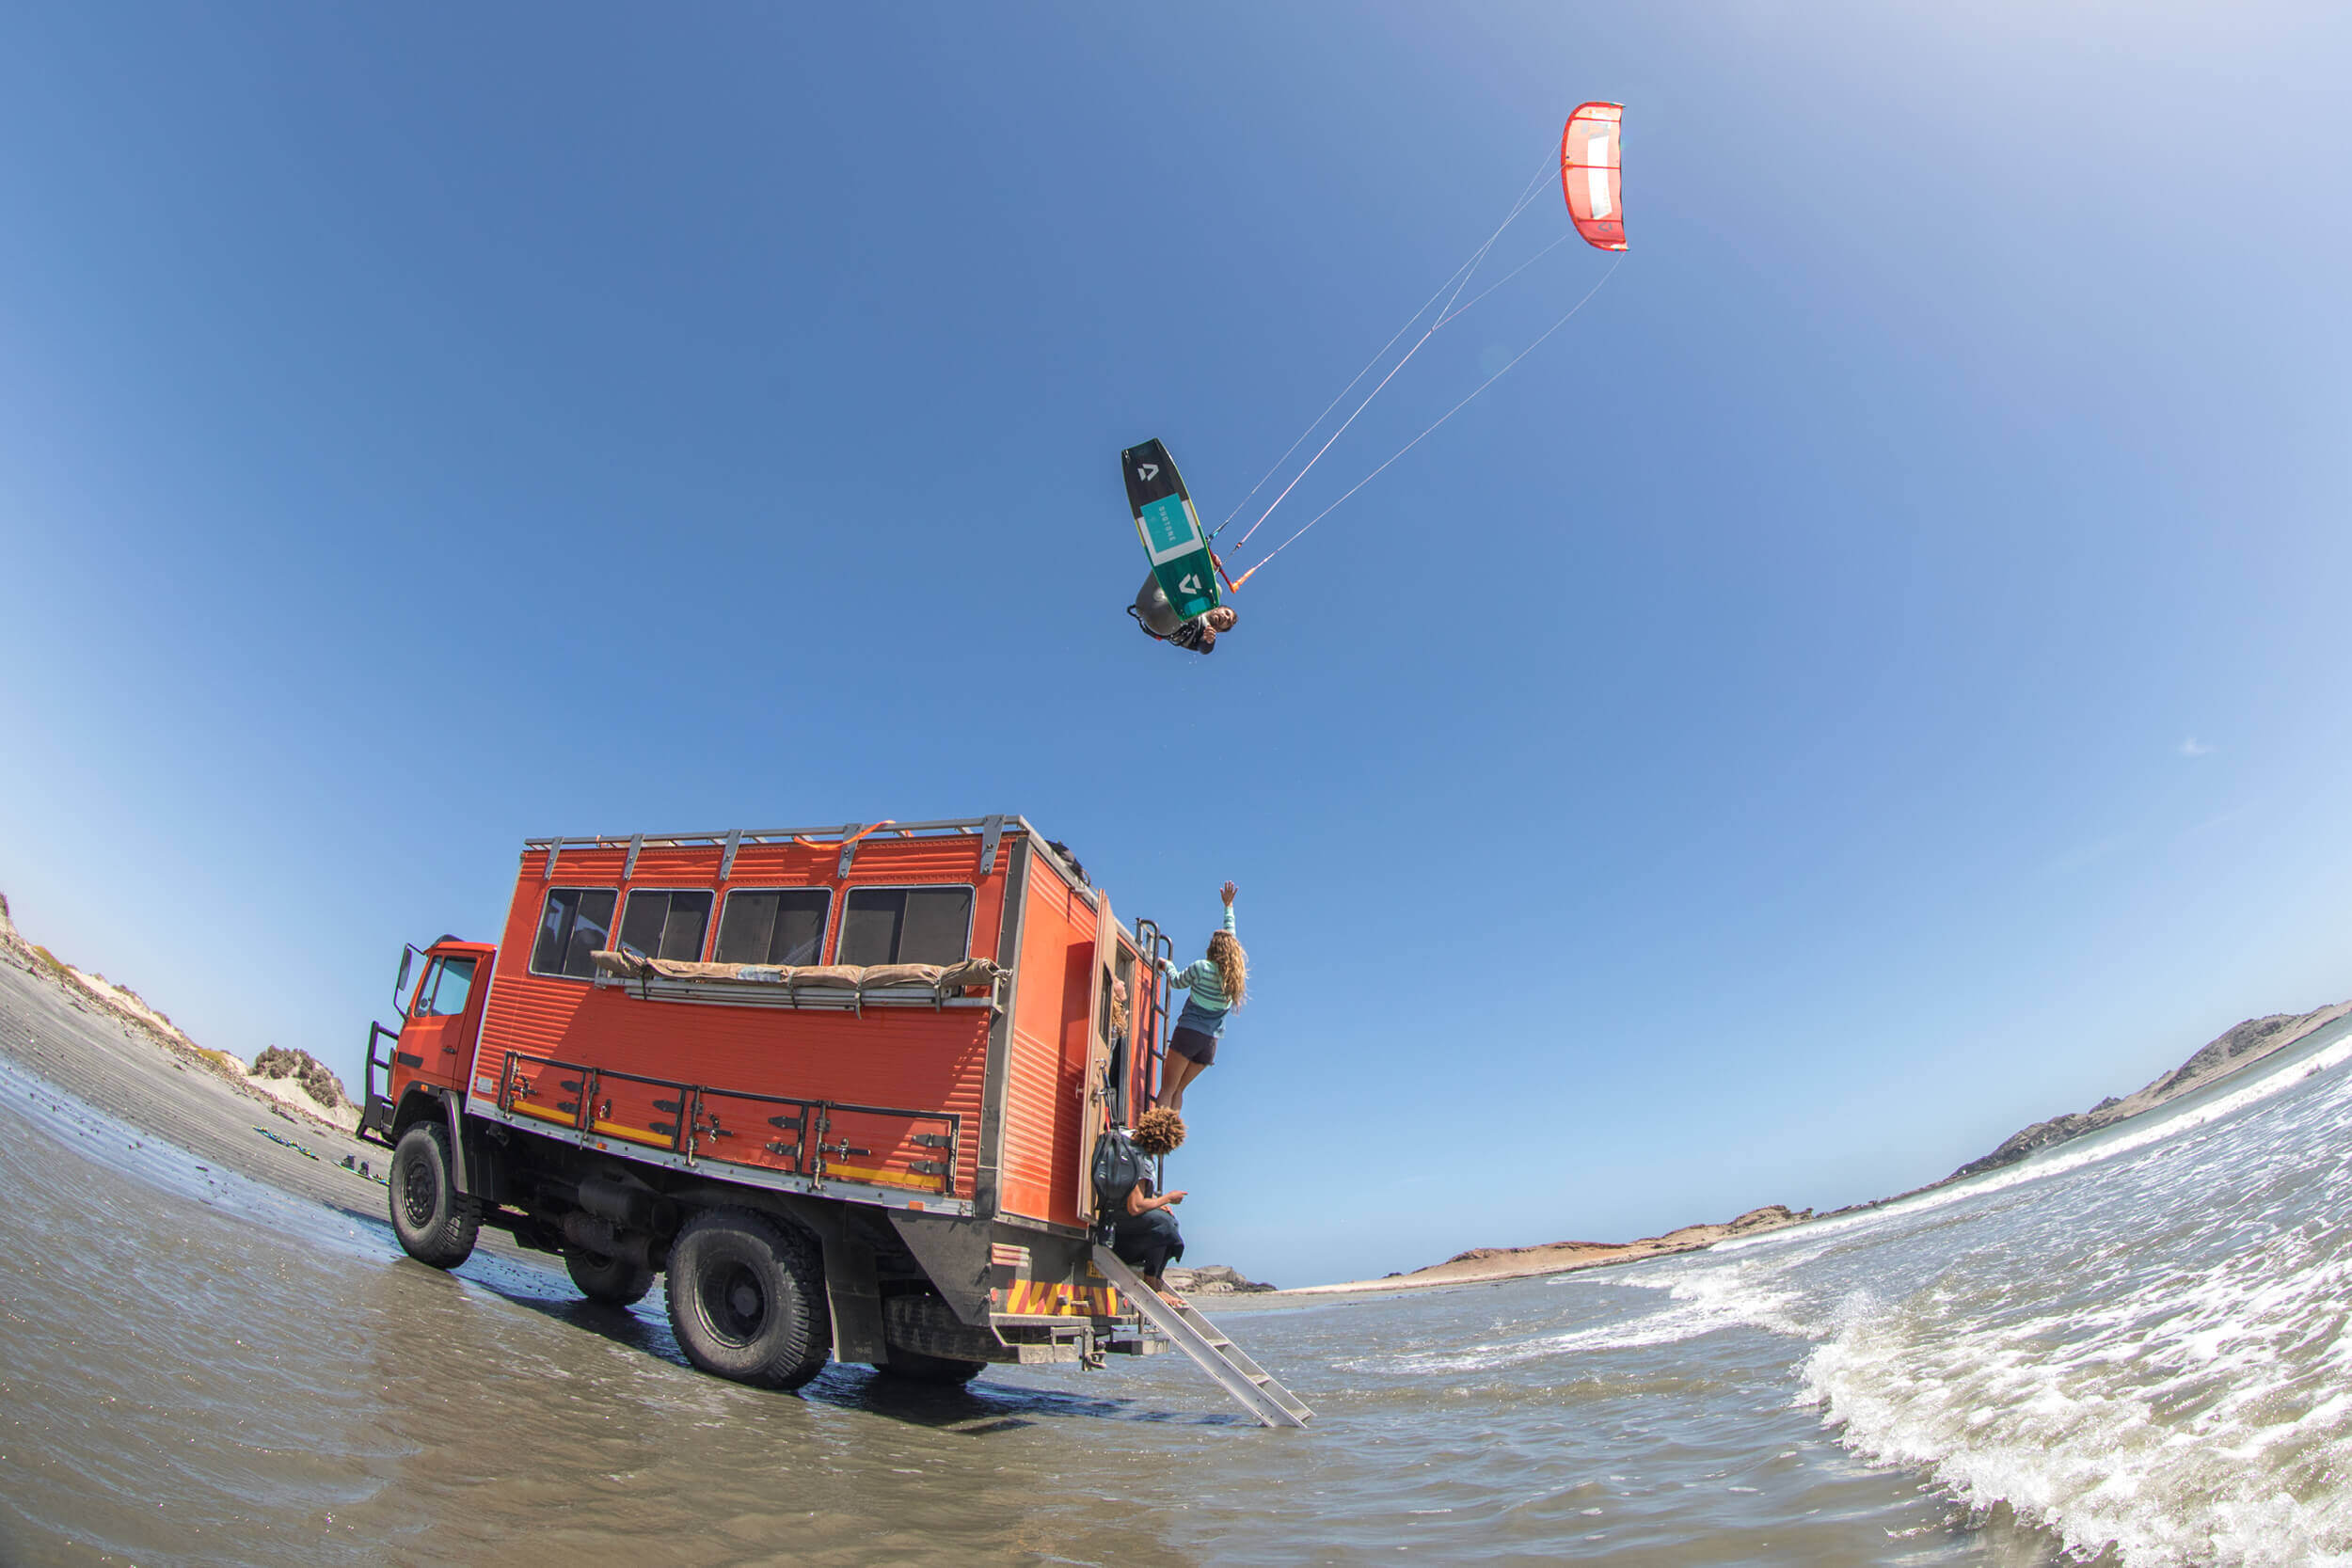 Duotone Kiteboarding Select 2020 Product Video